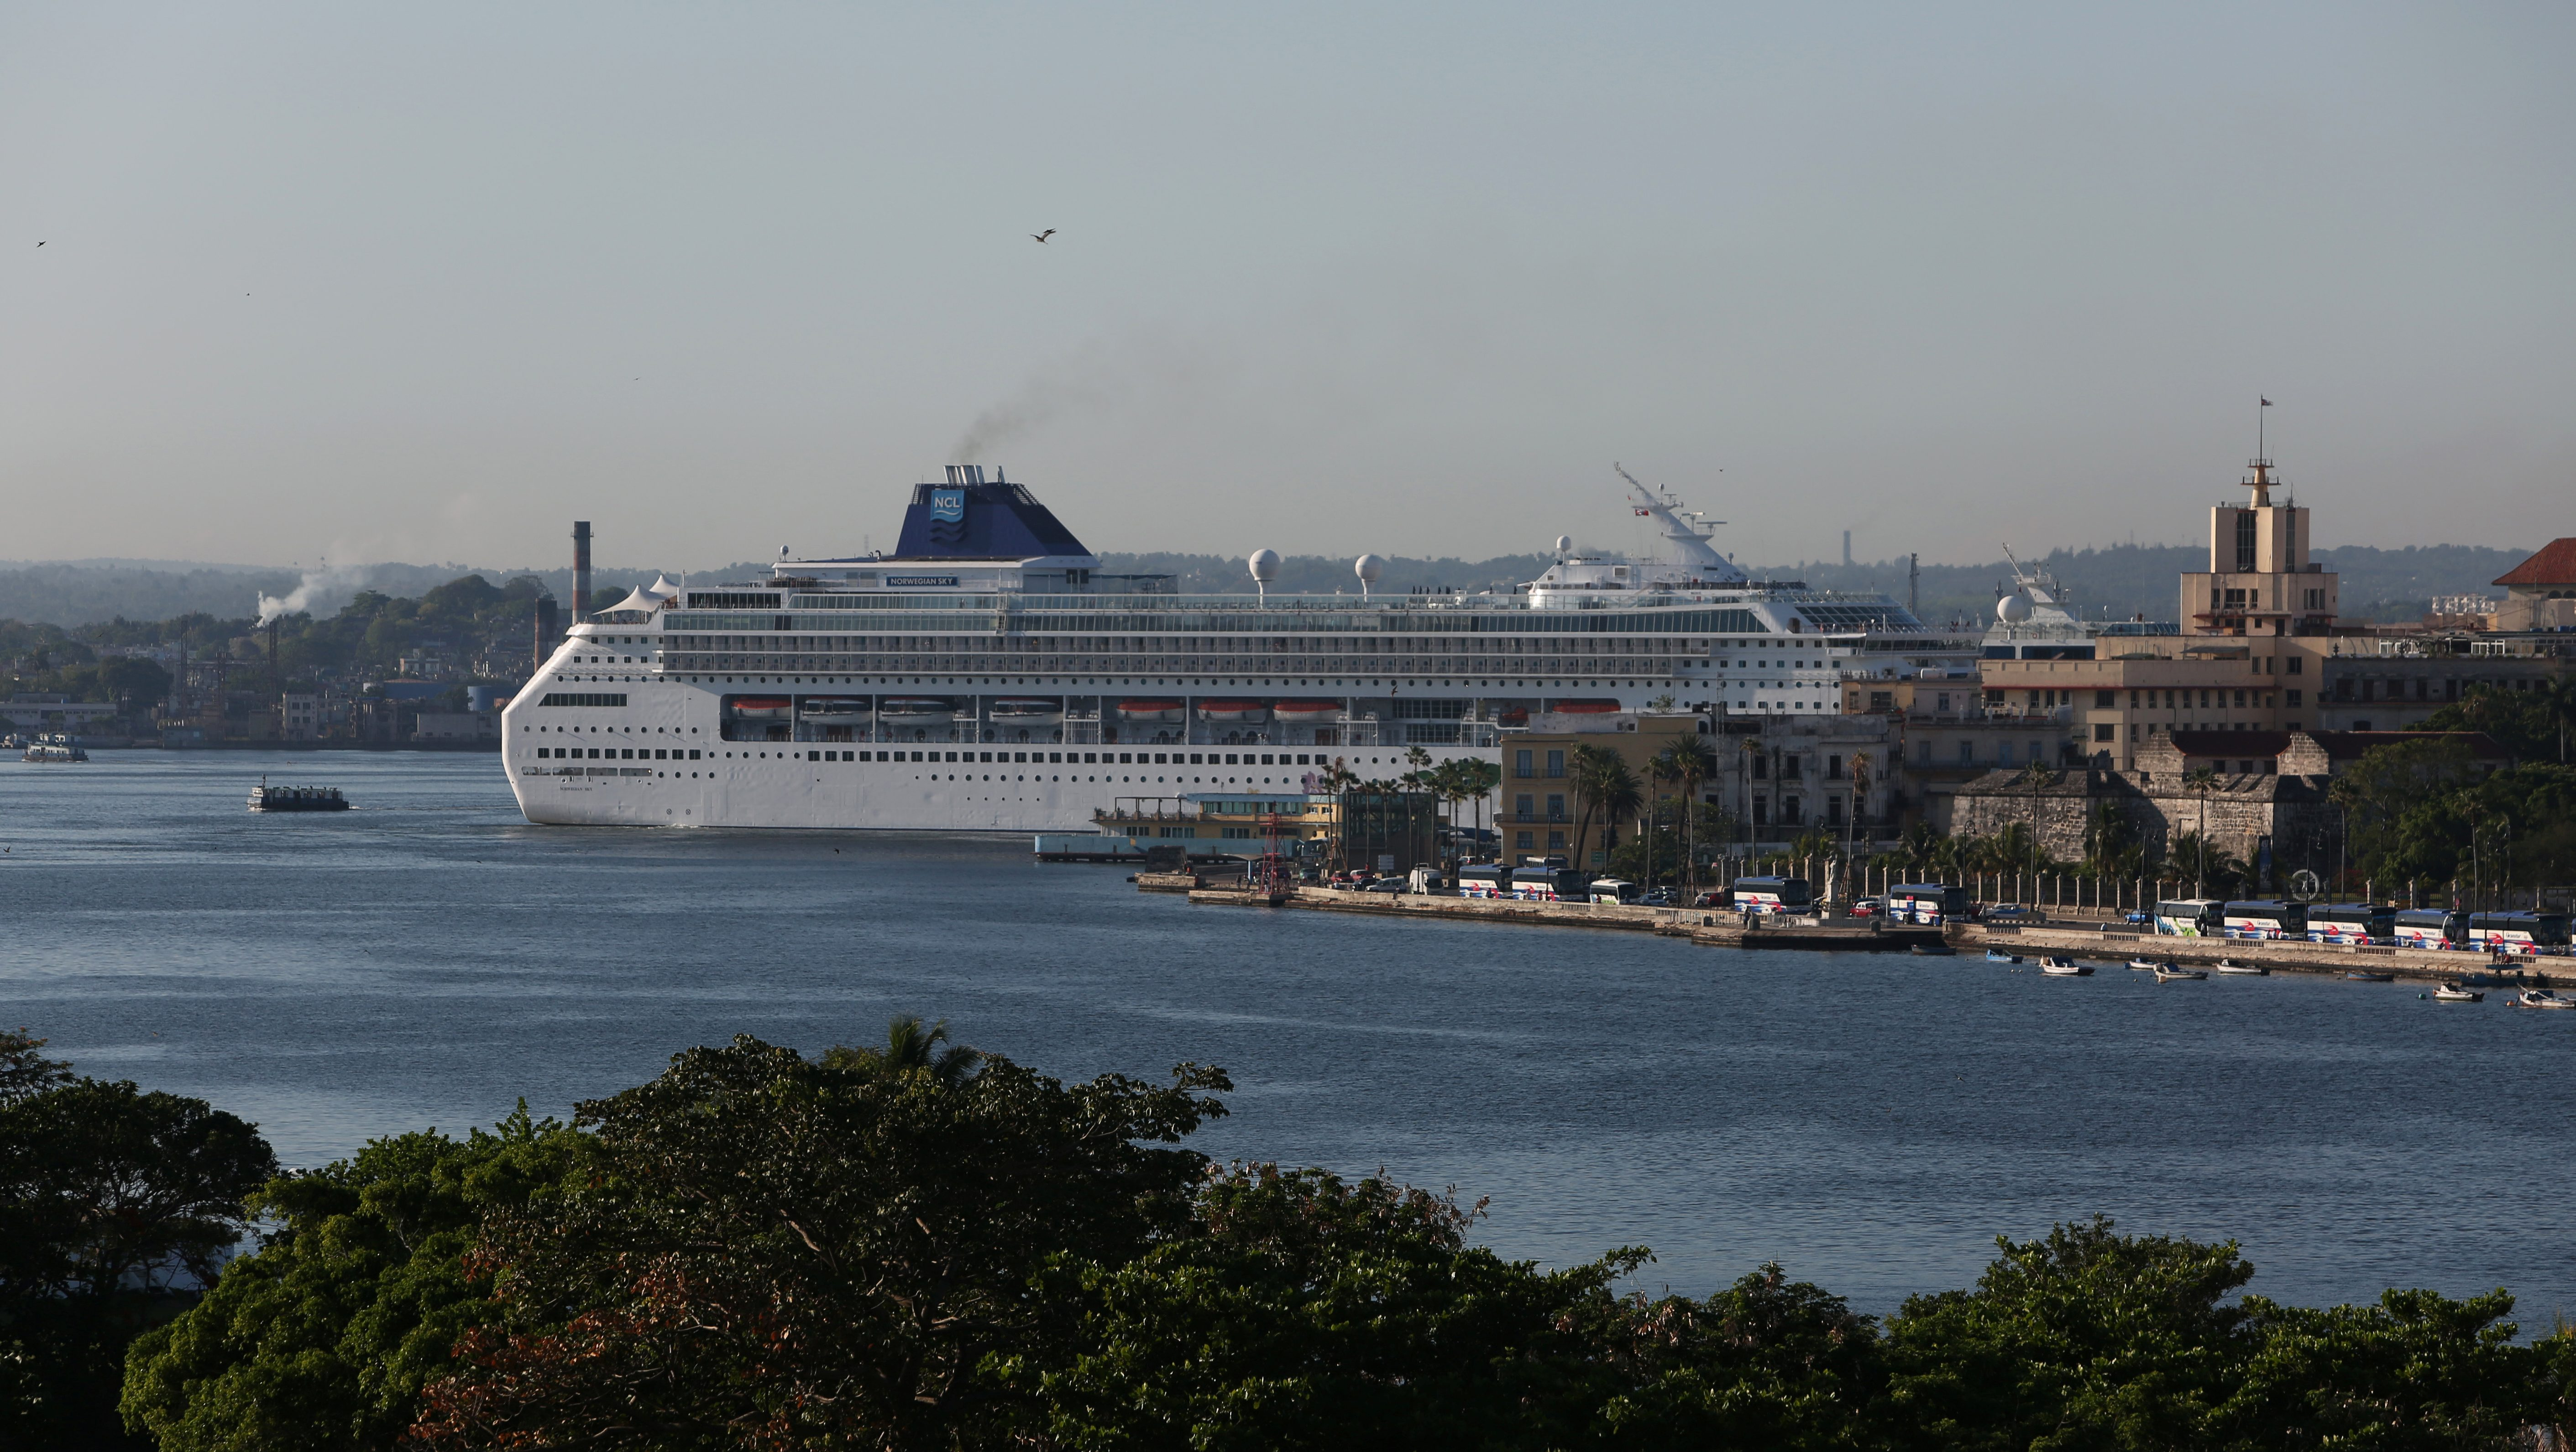 A cruise ship is seen at the Havana bay, Cuba May 16, 2017. Picture taken May 16, 2017. REUTERS/Stringer - RTS17EFQ